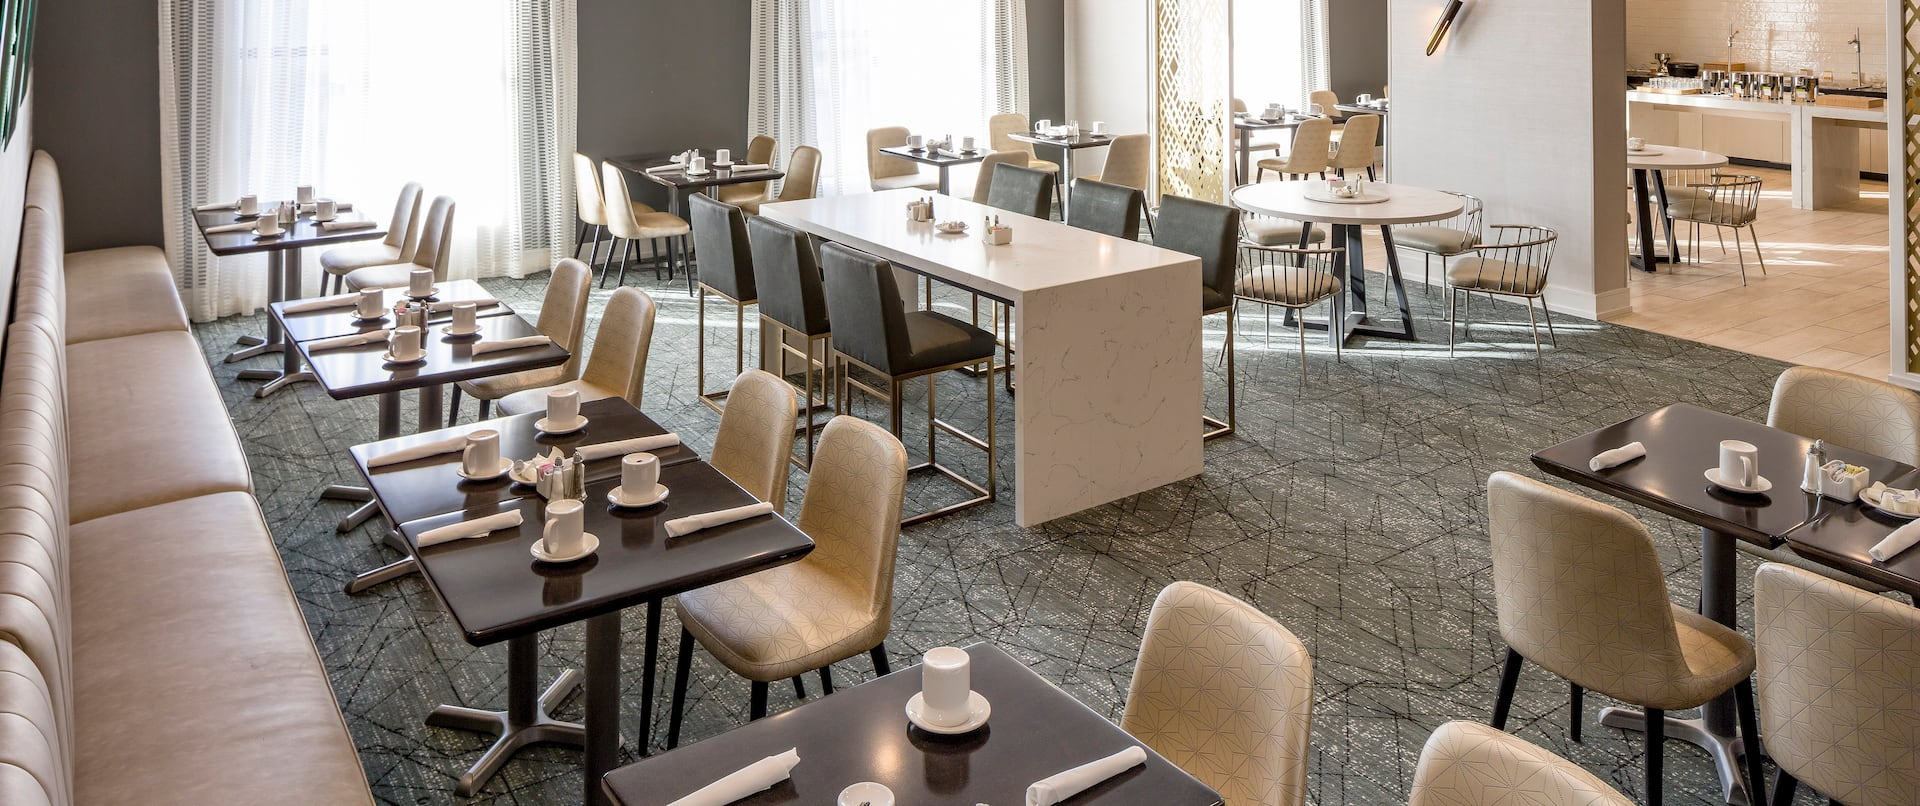 Restaurant Dining Area with Chairs, Tables and Sofa Seating